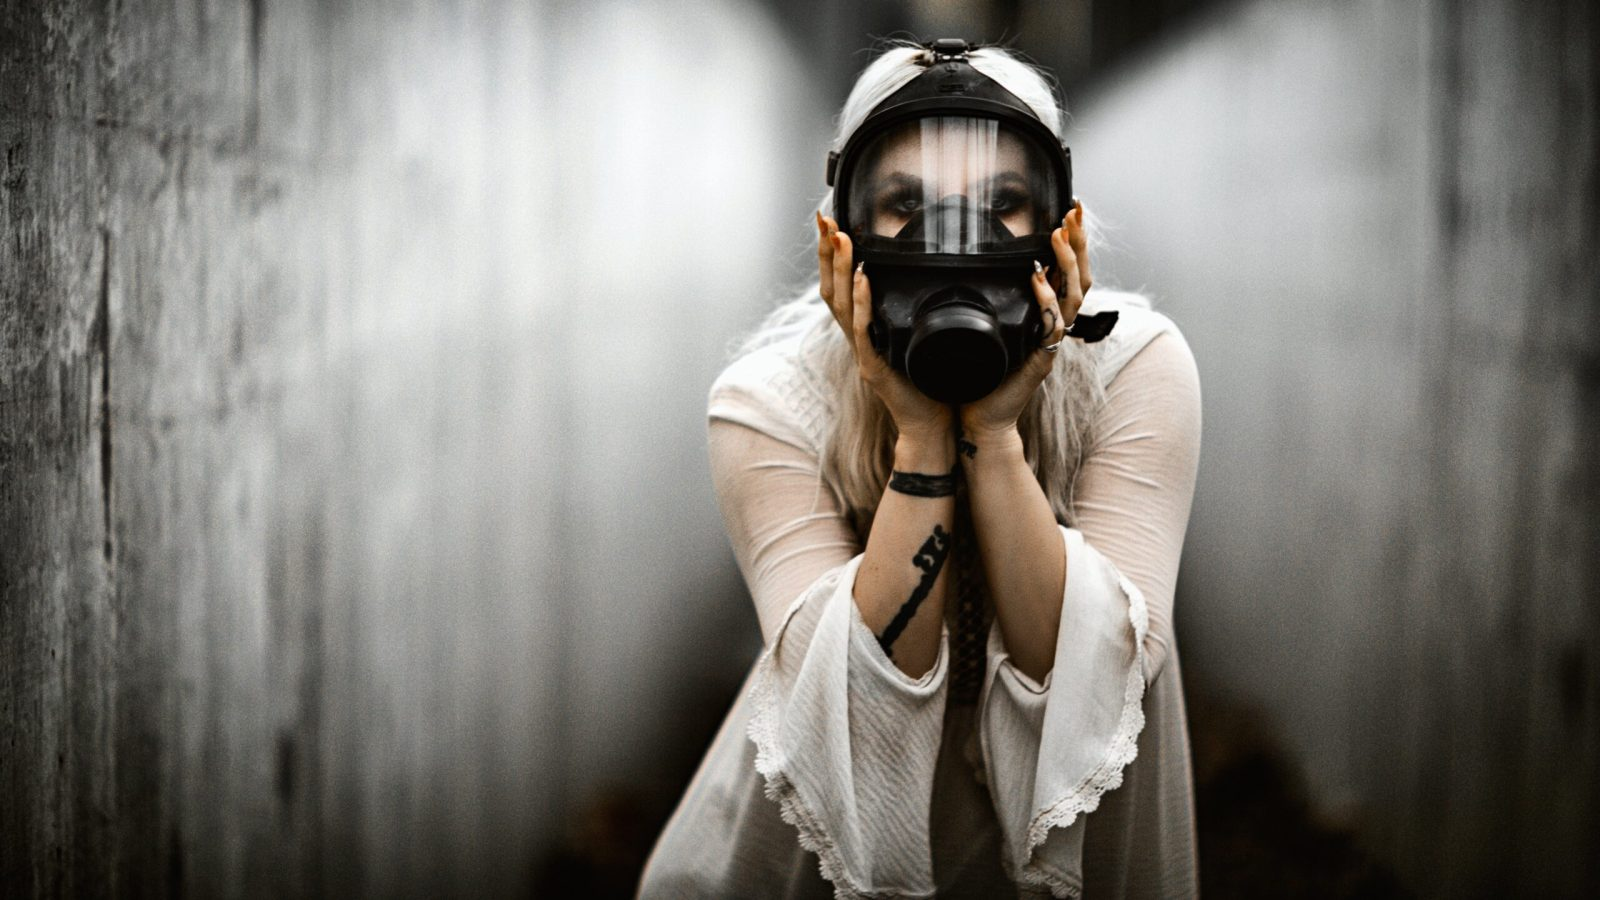 A woman in a long-sleeved white shirt wears a gas mask